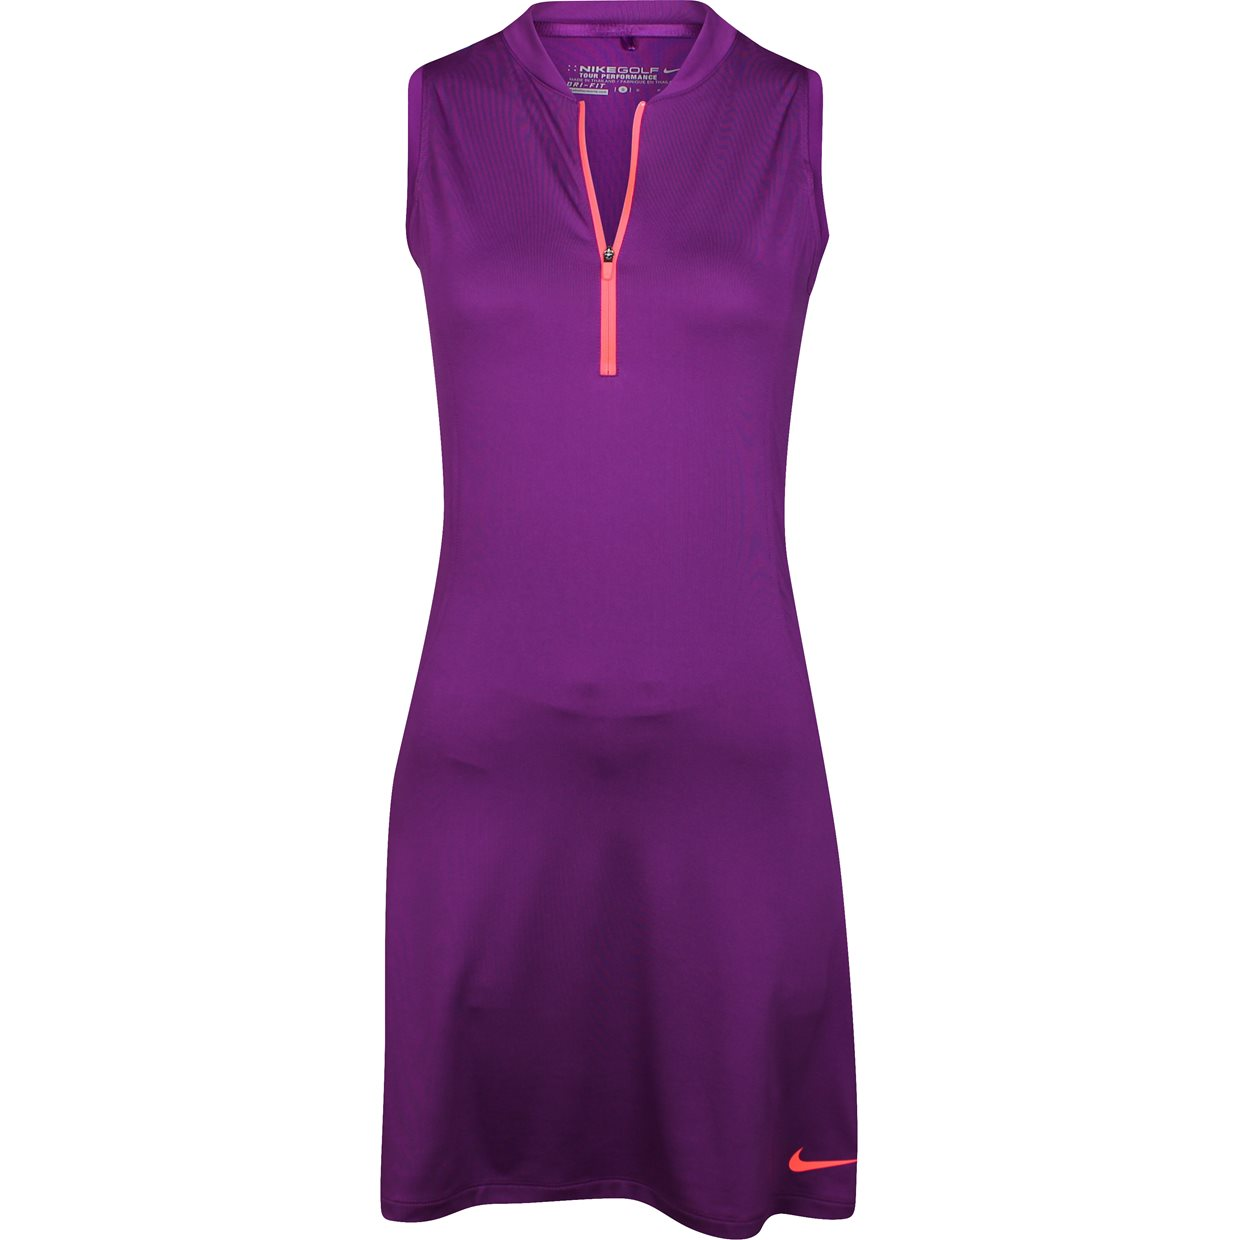 Women nike dri fit sleeveless golf shirt apparel at for Women s dri fit golf shirts